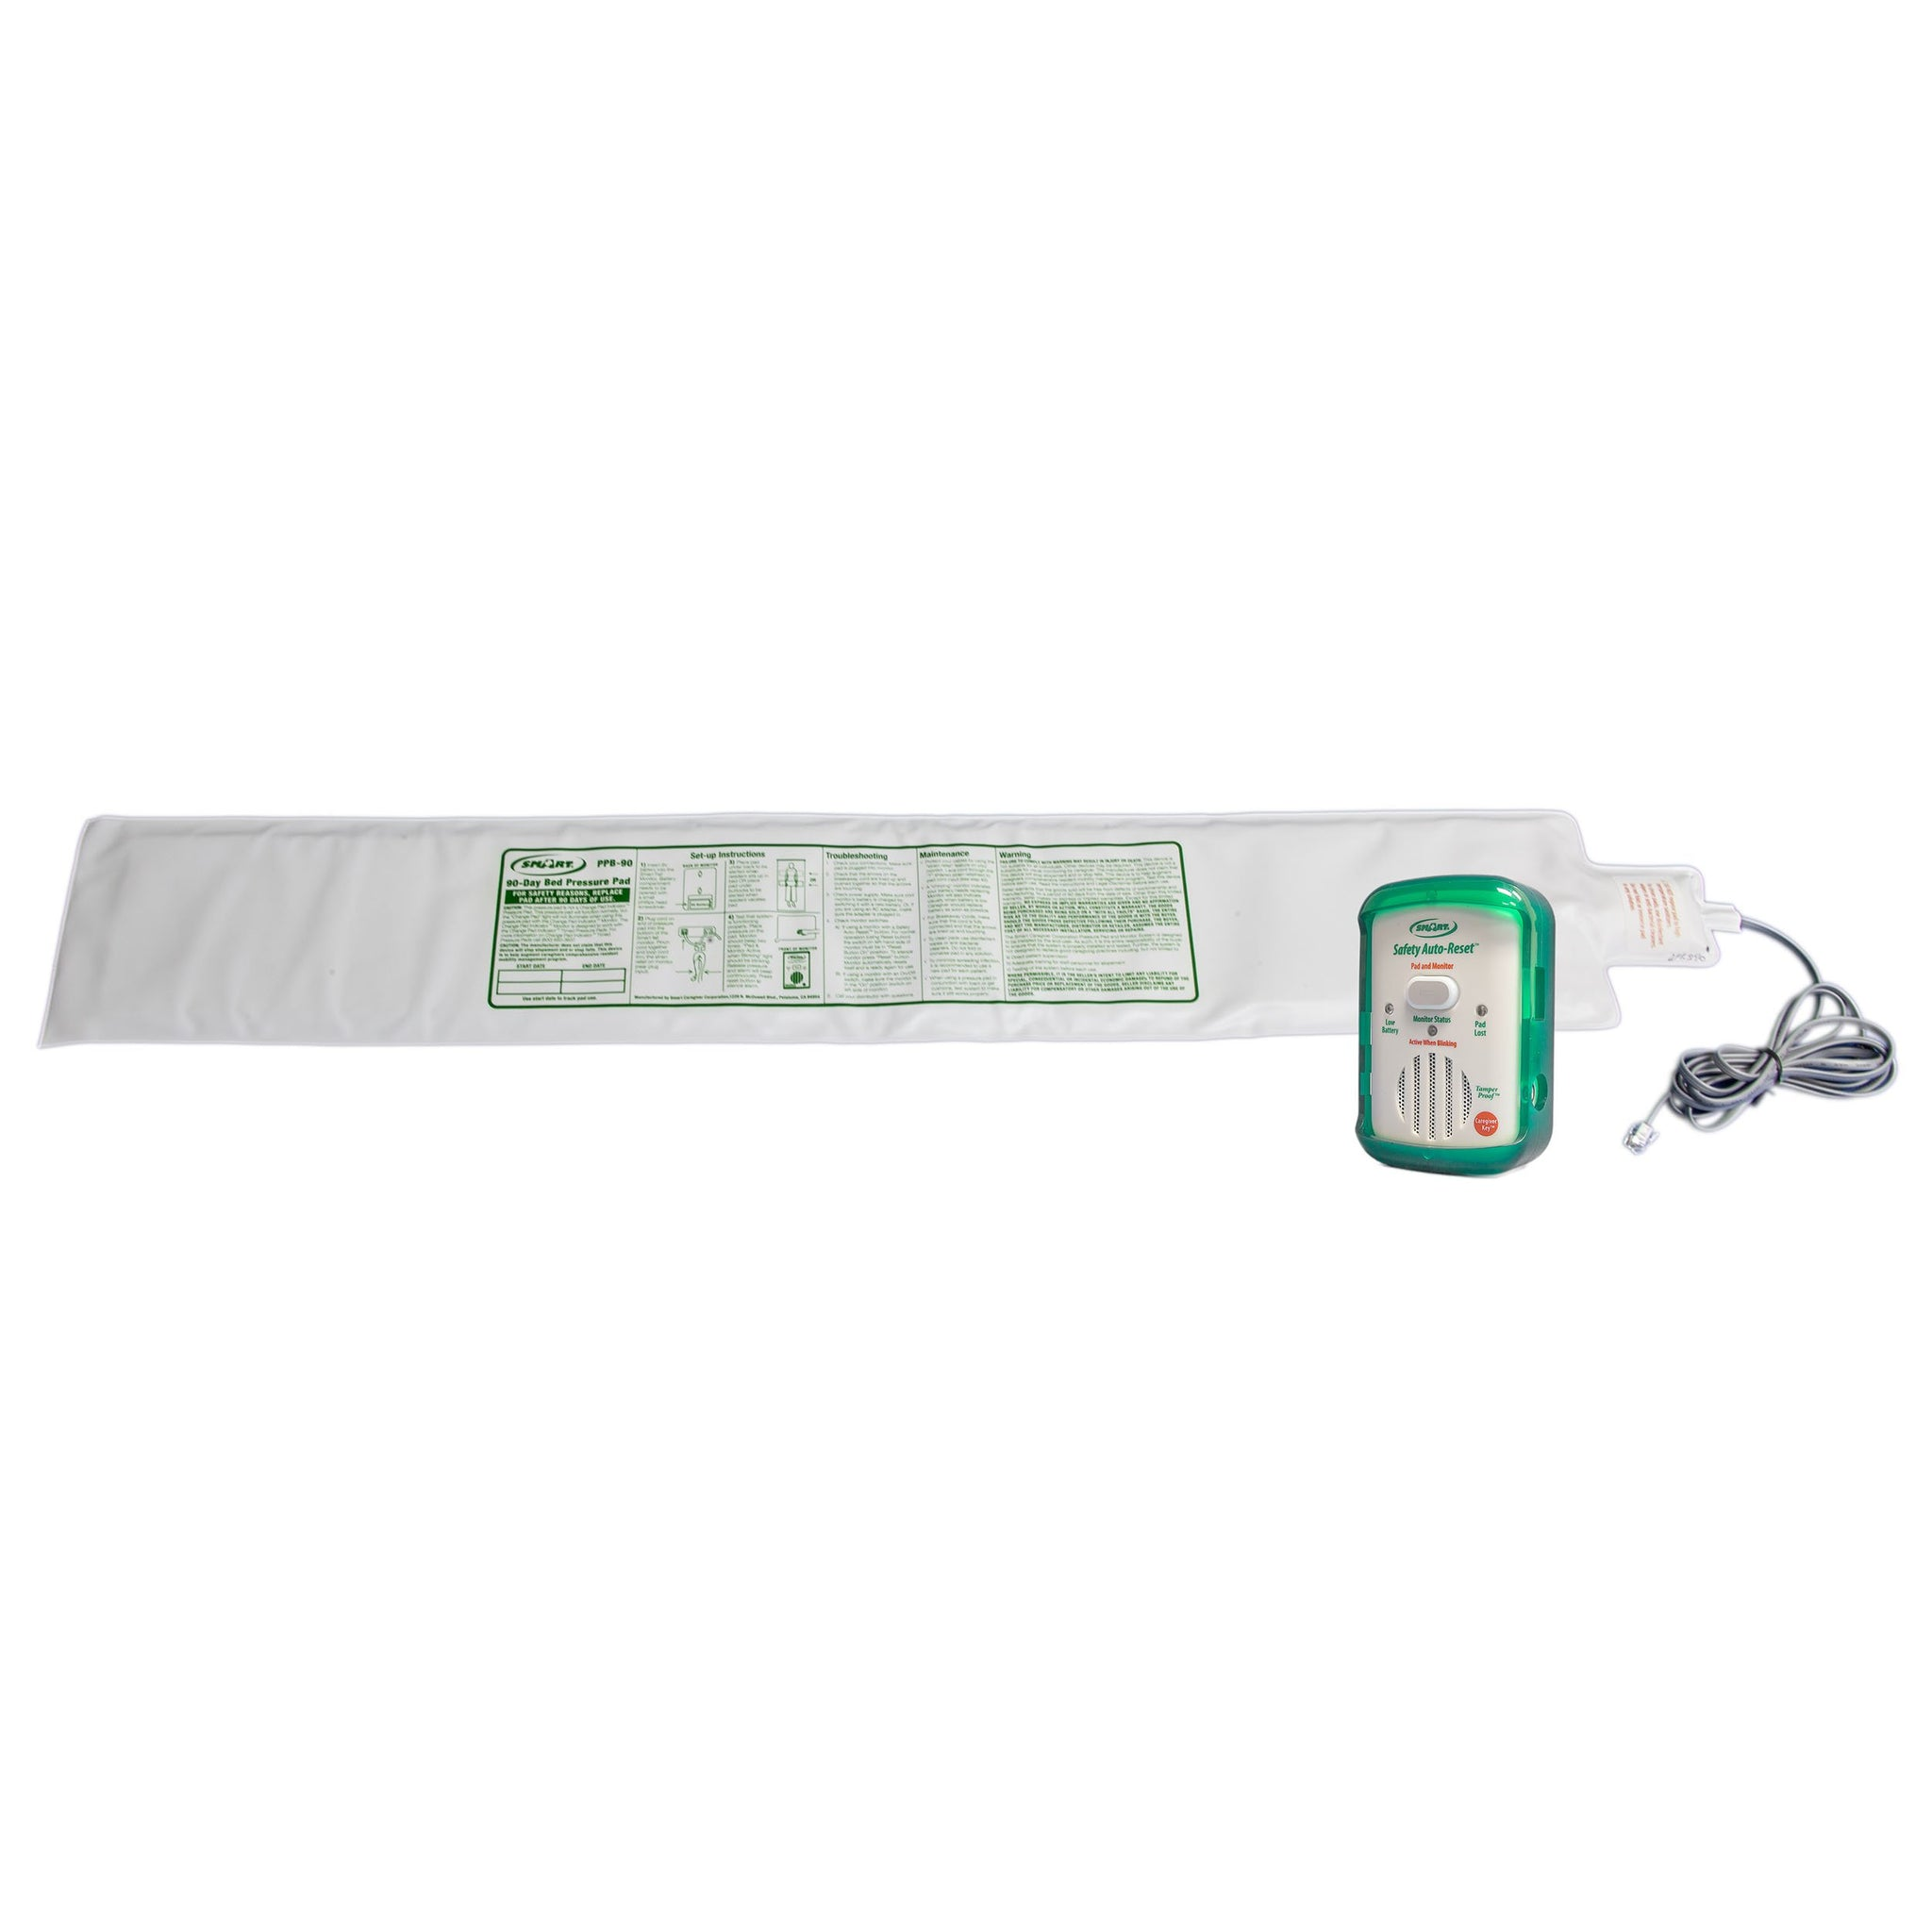 Smart Caregiver FallGuard Safety Auto-Reset Monitor with Weight-Sensing Bed Pad System